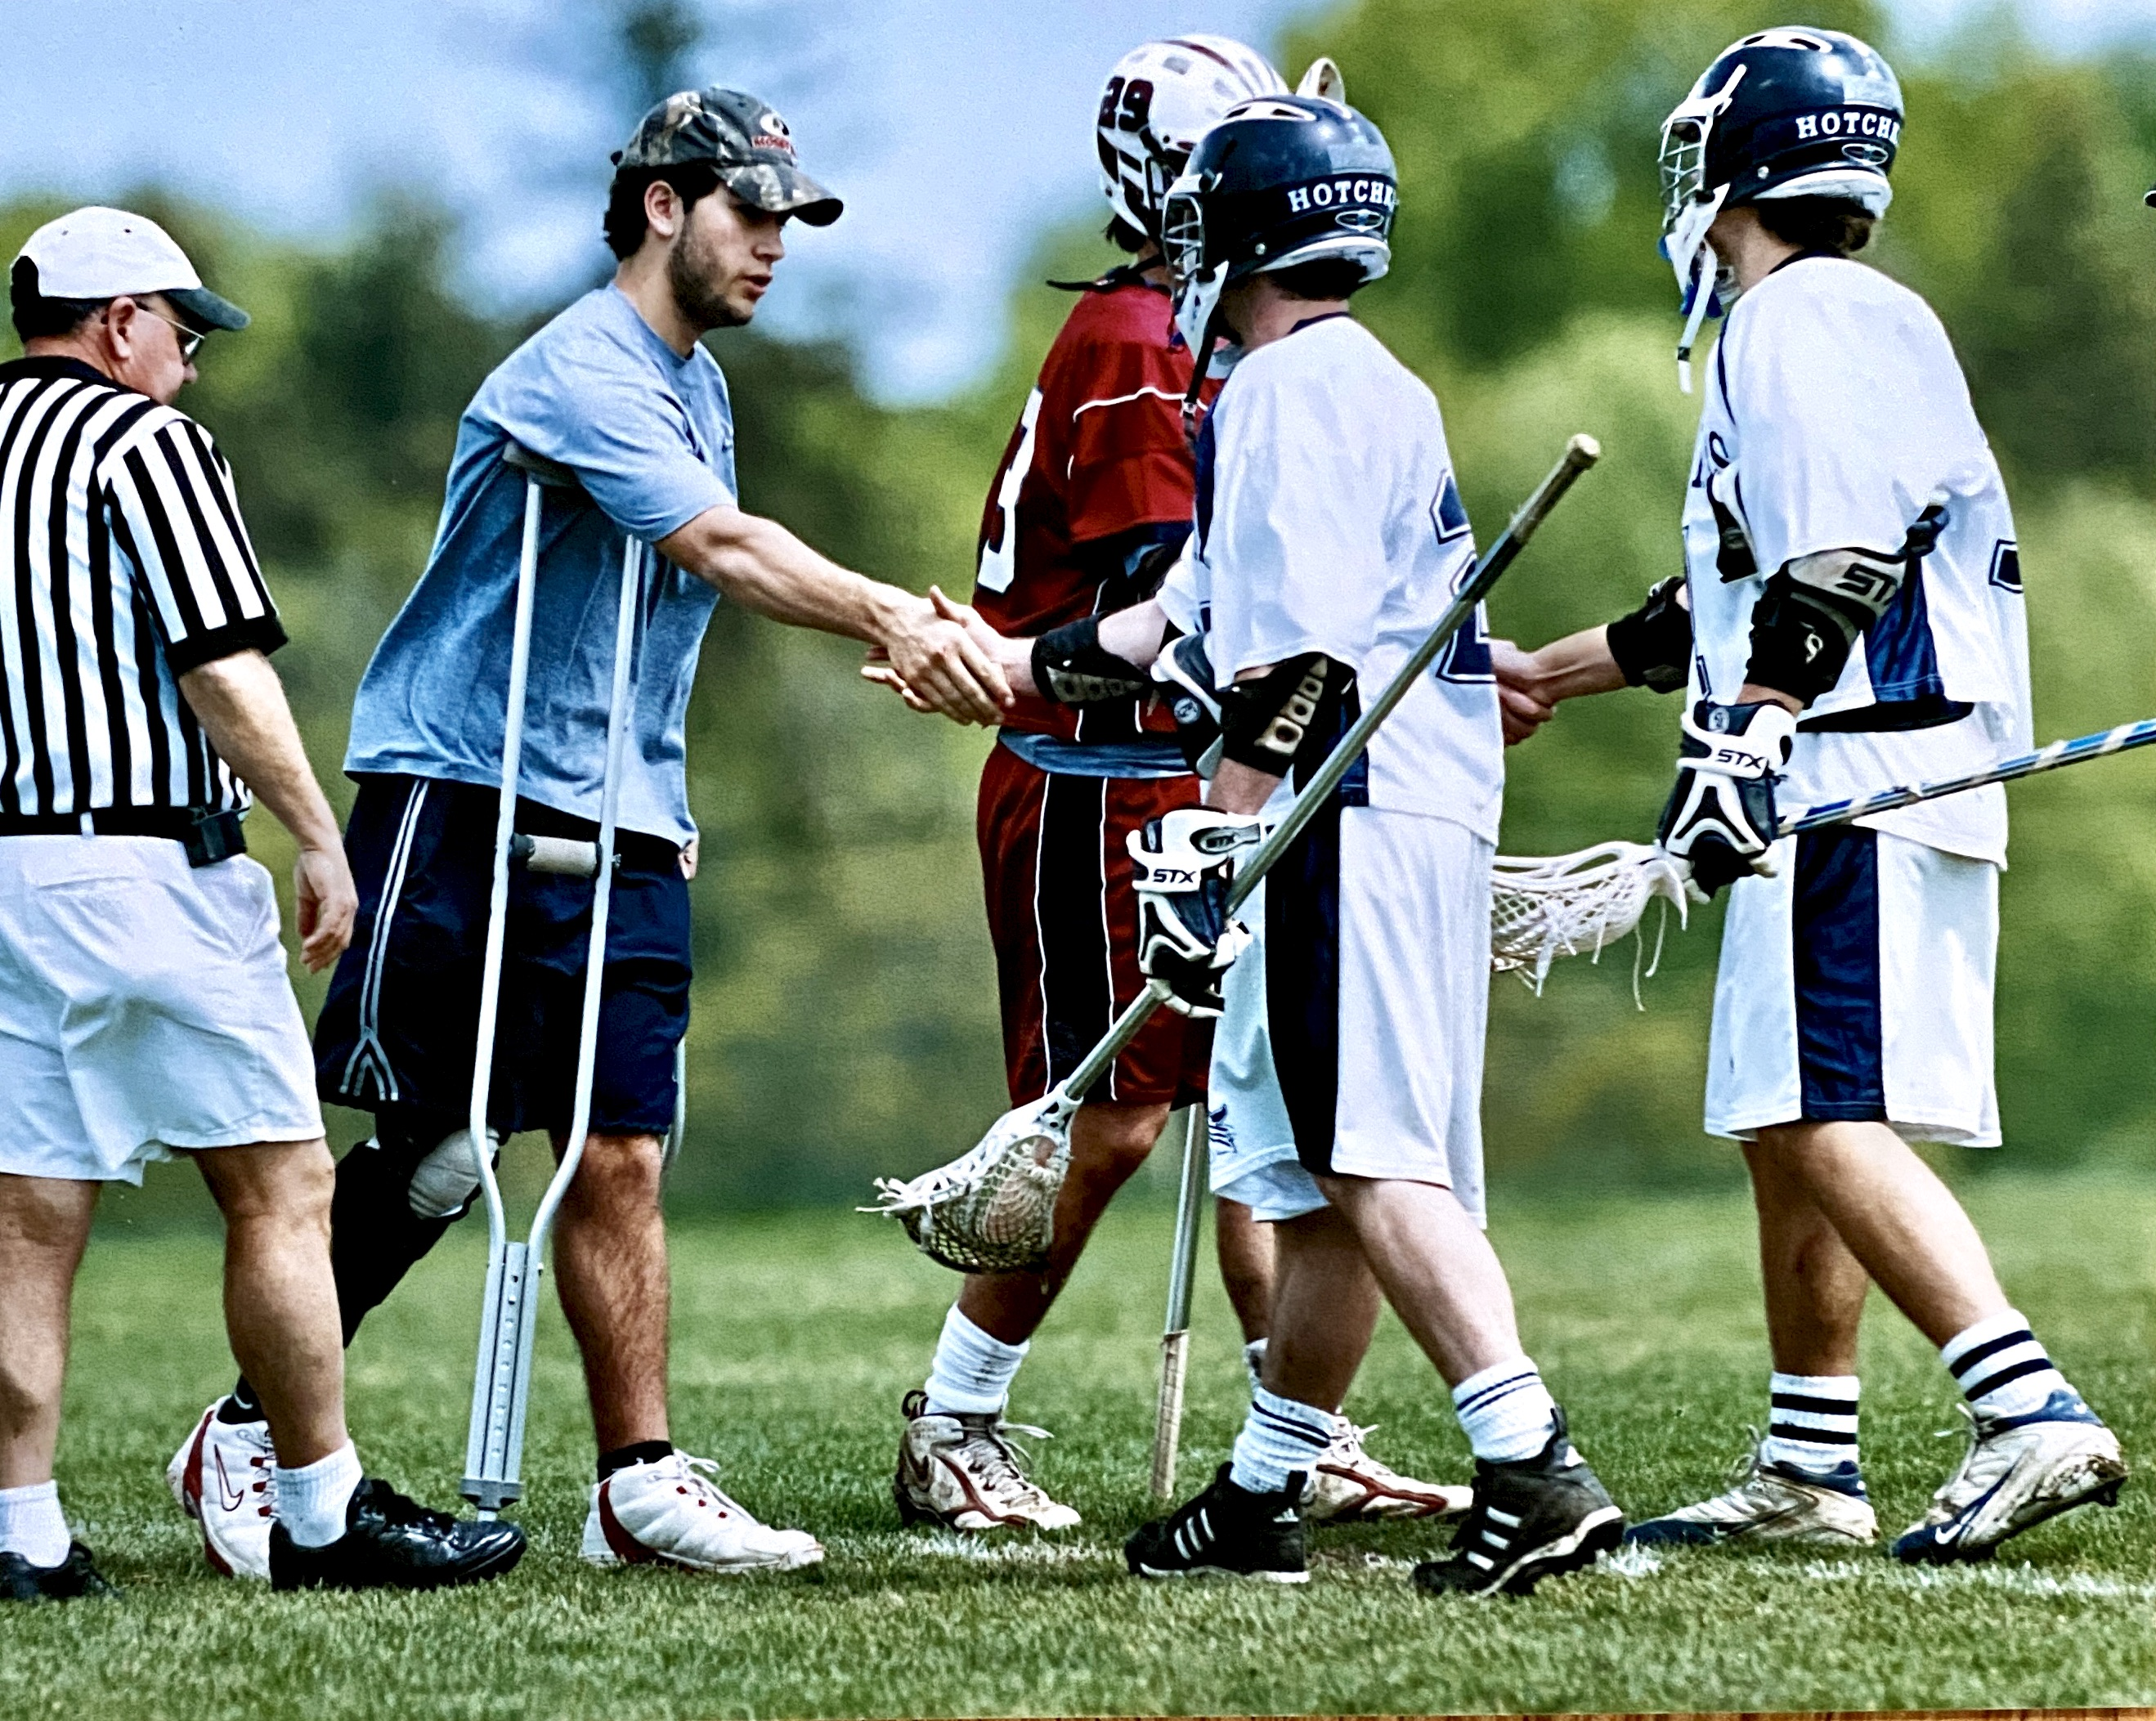 my son post knee injury on lacrosse filed shaking hands with opposing team